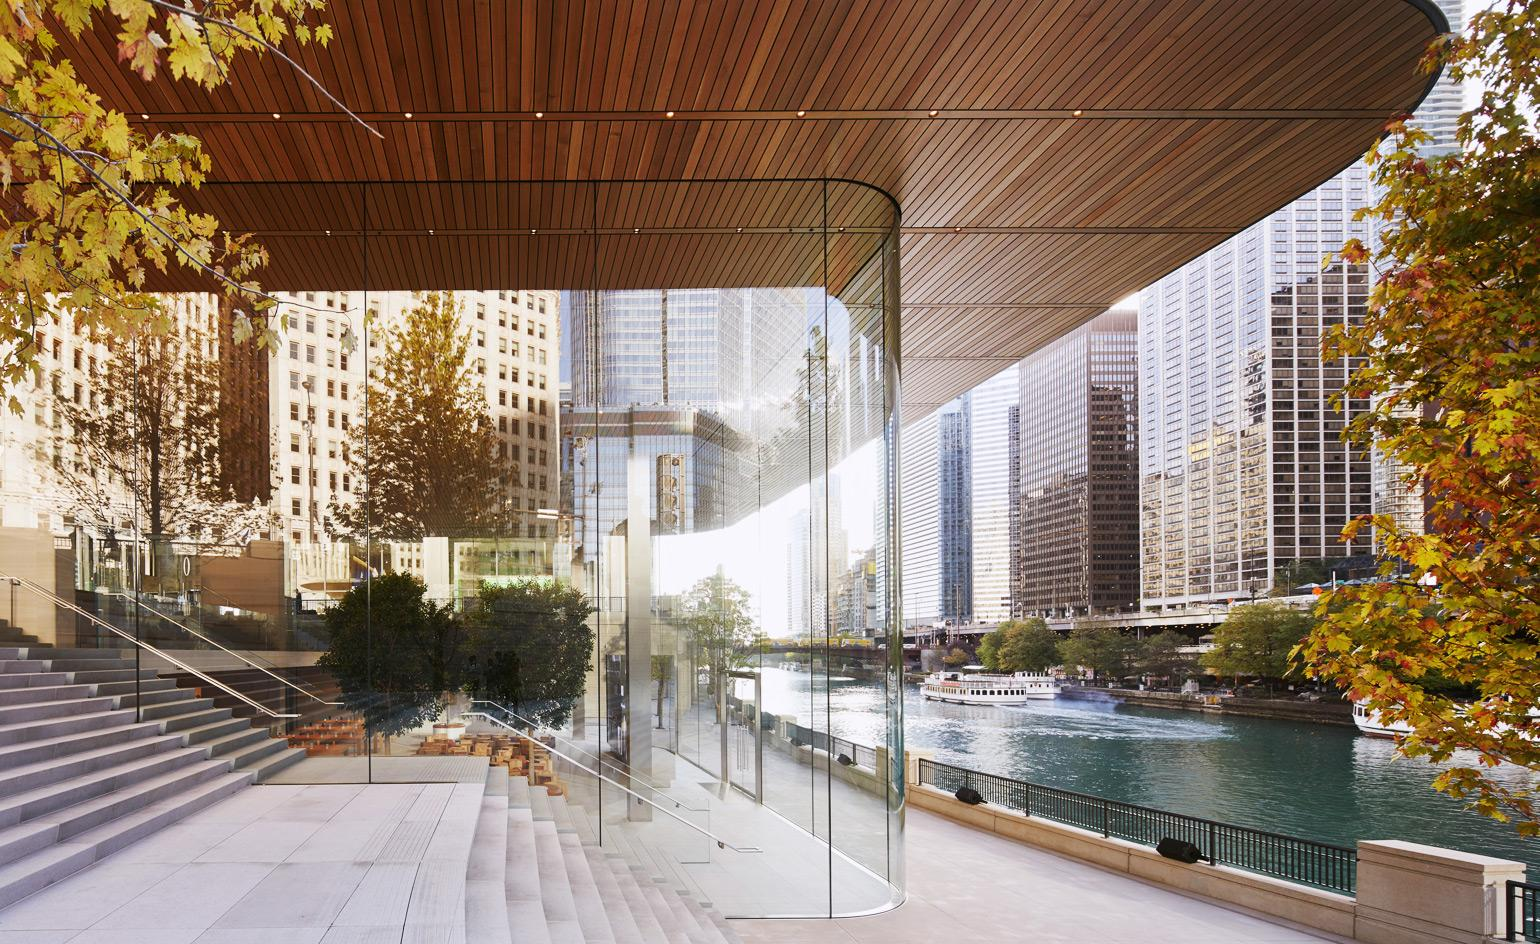 New Pioneer Travel >> Stefan Behling and Angela Ahrendts on the future of retail at Apple Michigan Avenue | Wallpaper*